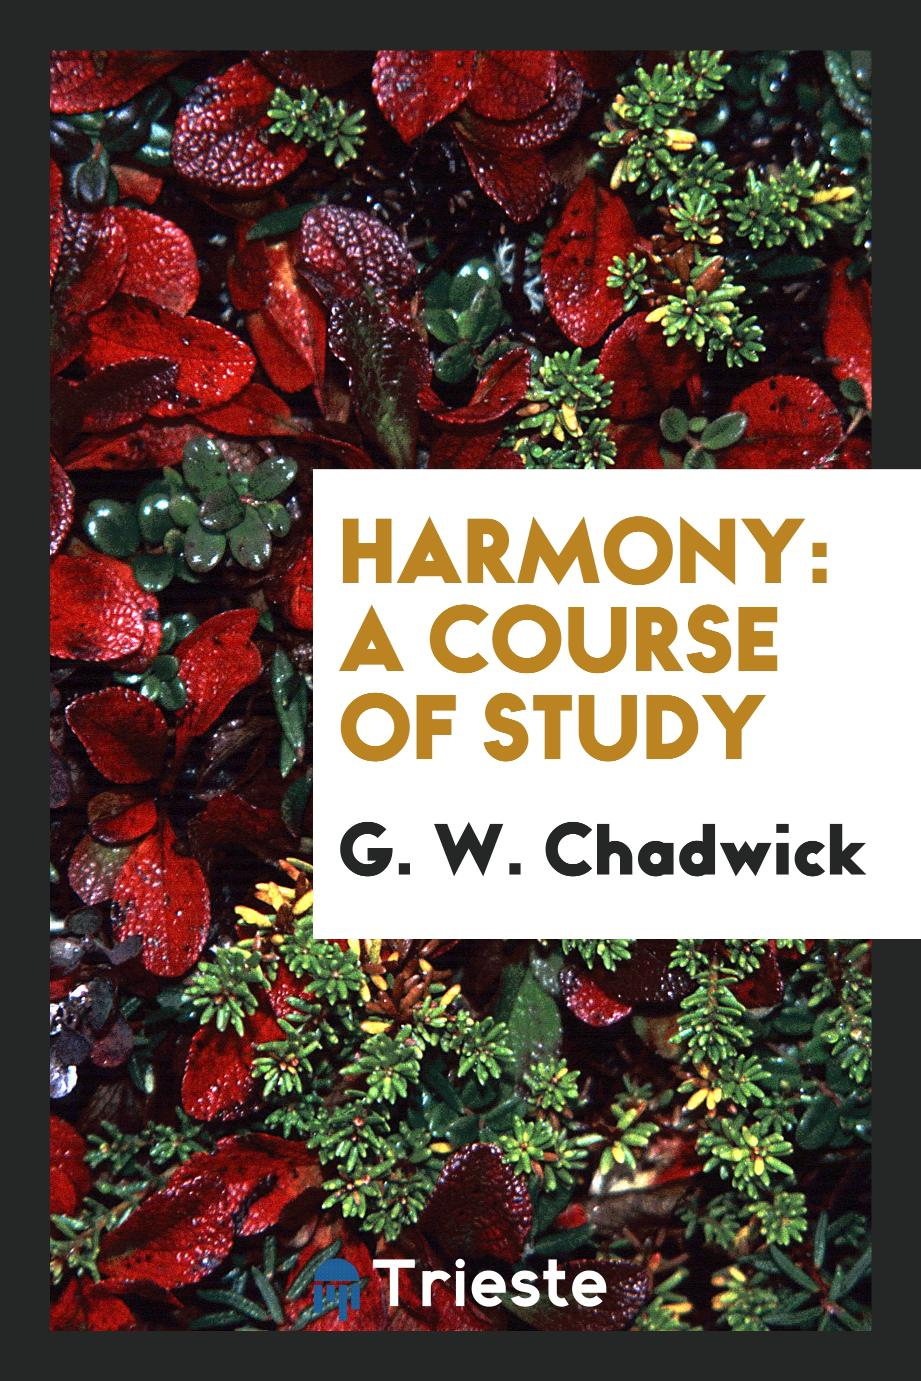 Harmony: A Course of Study